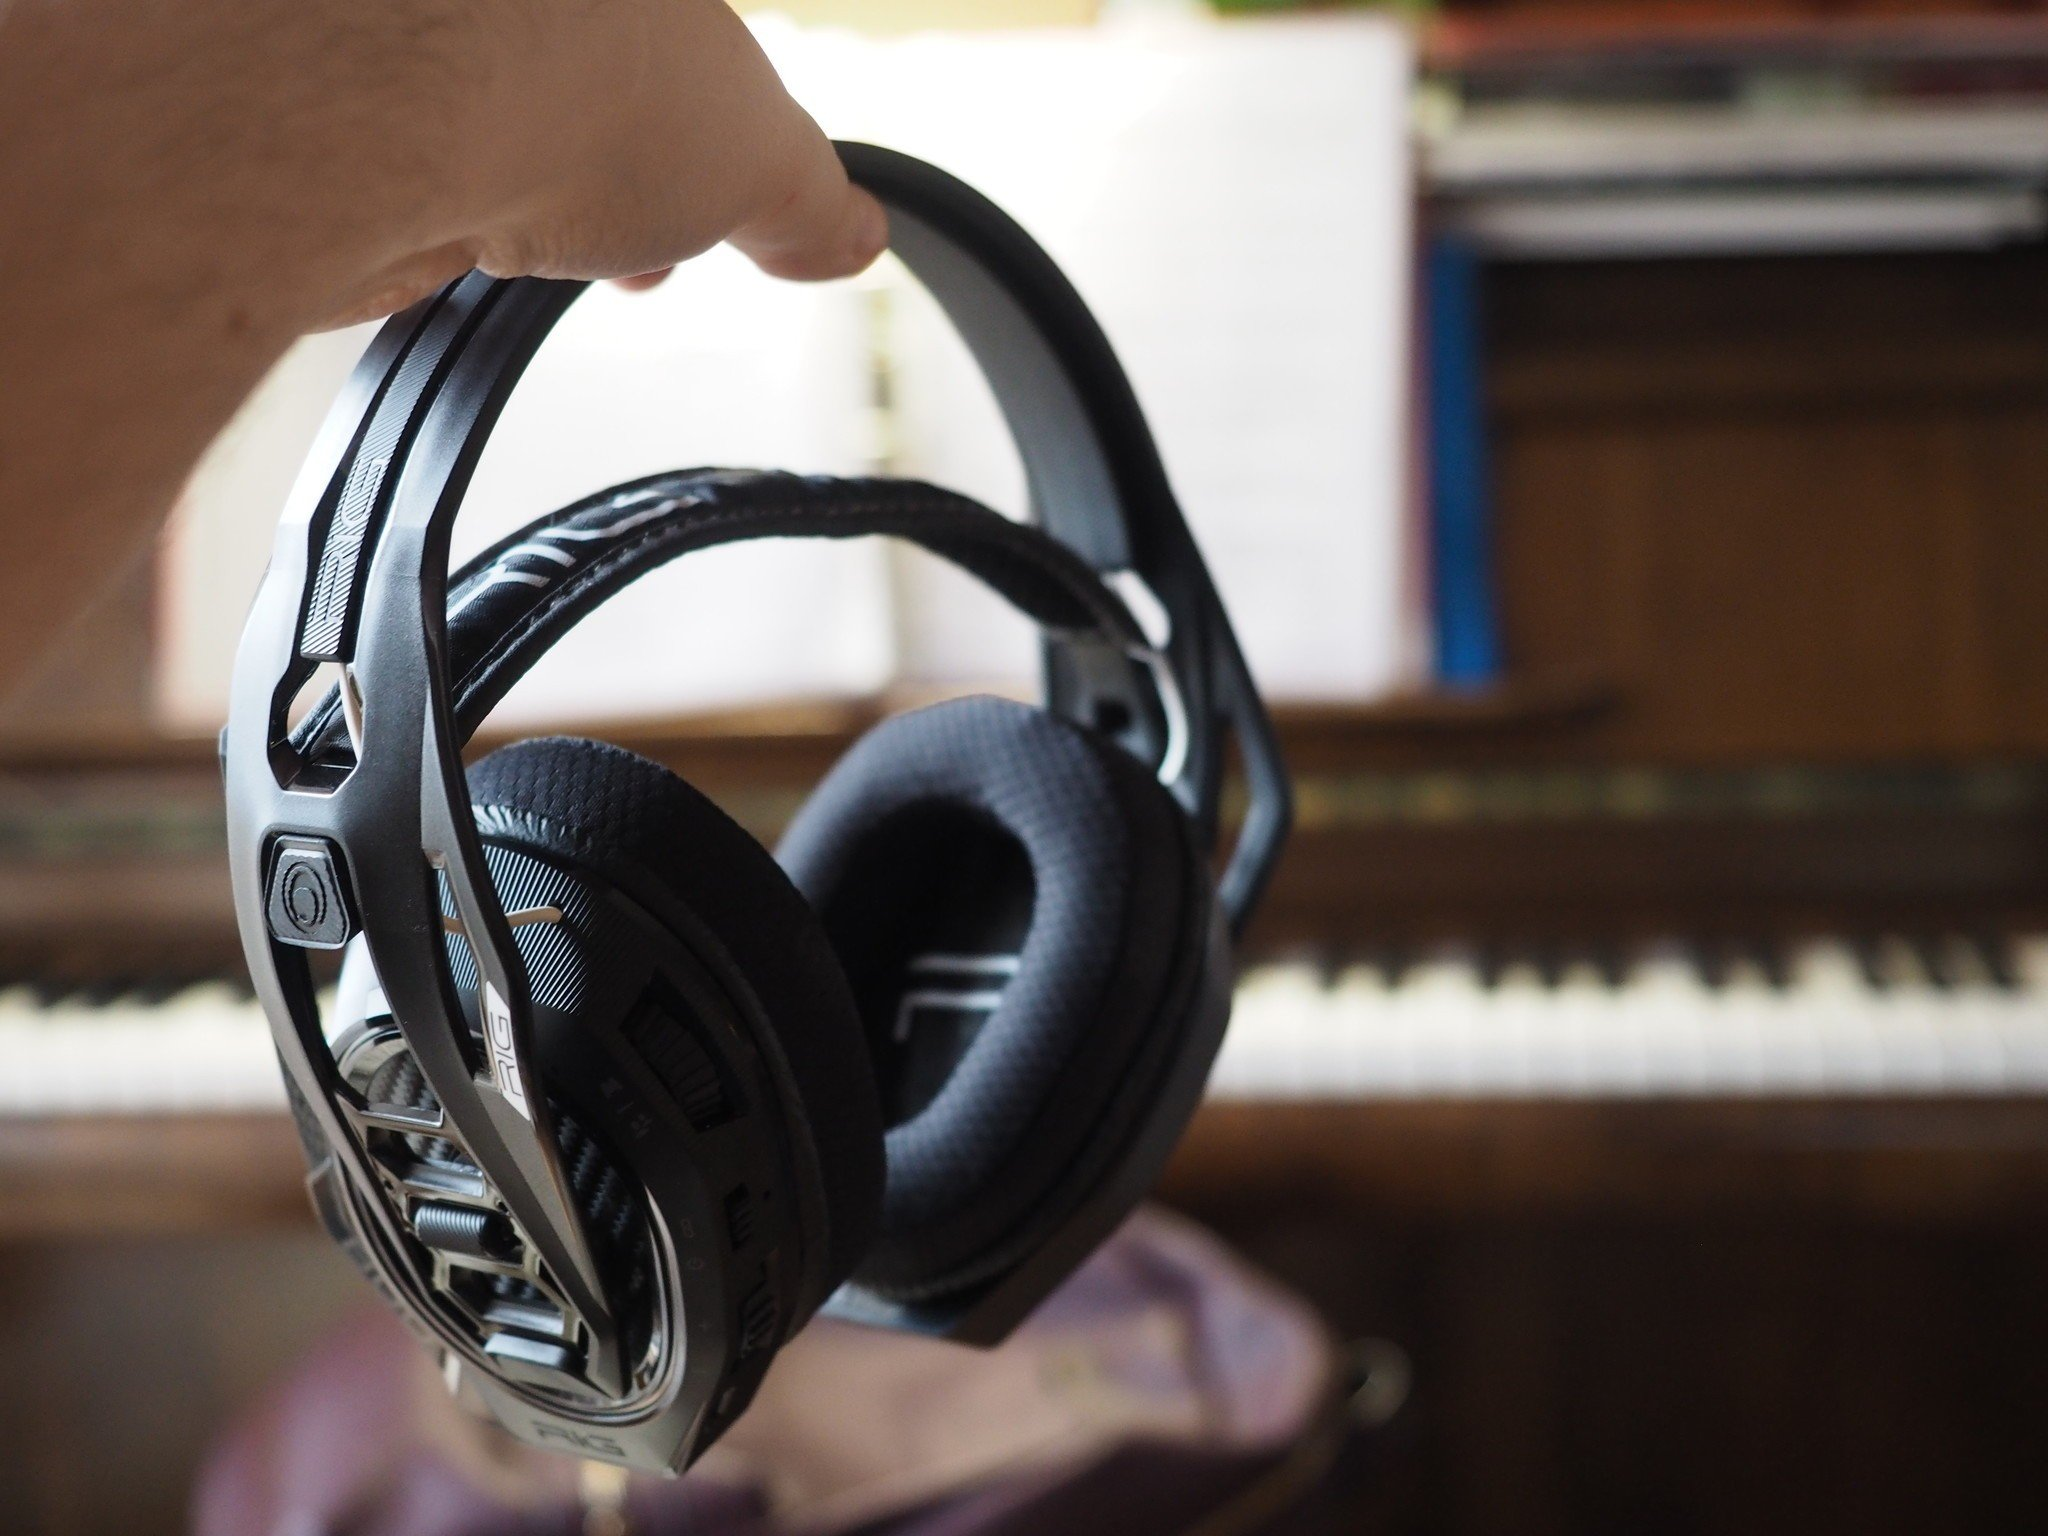 hight resolution of plantronics rig 800lx headset review no nonsense wireless audio for xbox and pc